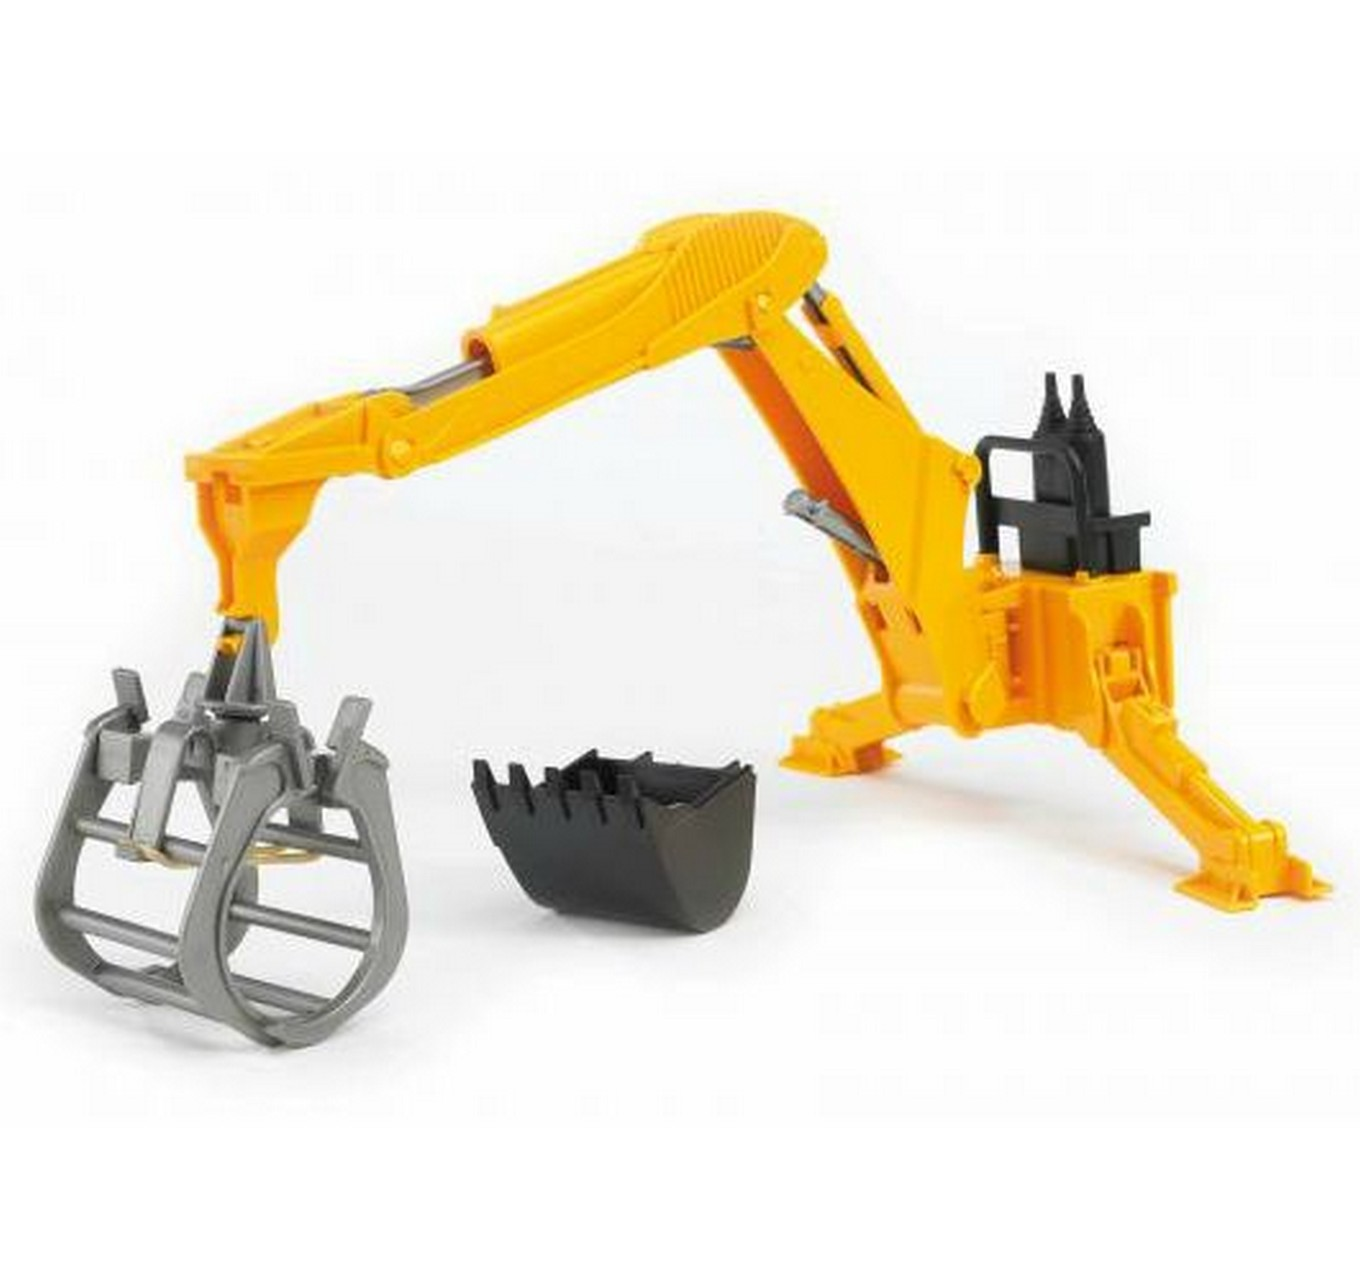 Rear Hydraulic Arm & Grab